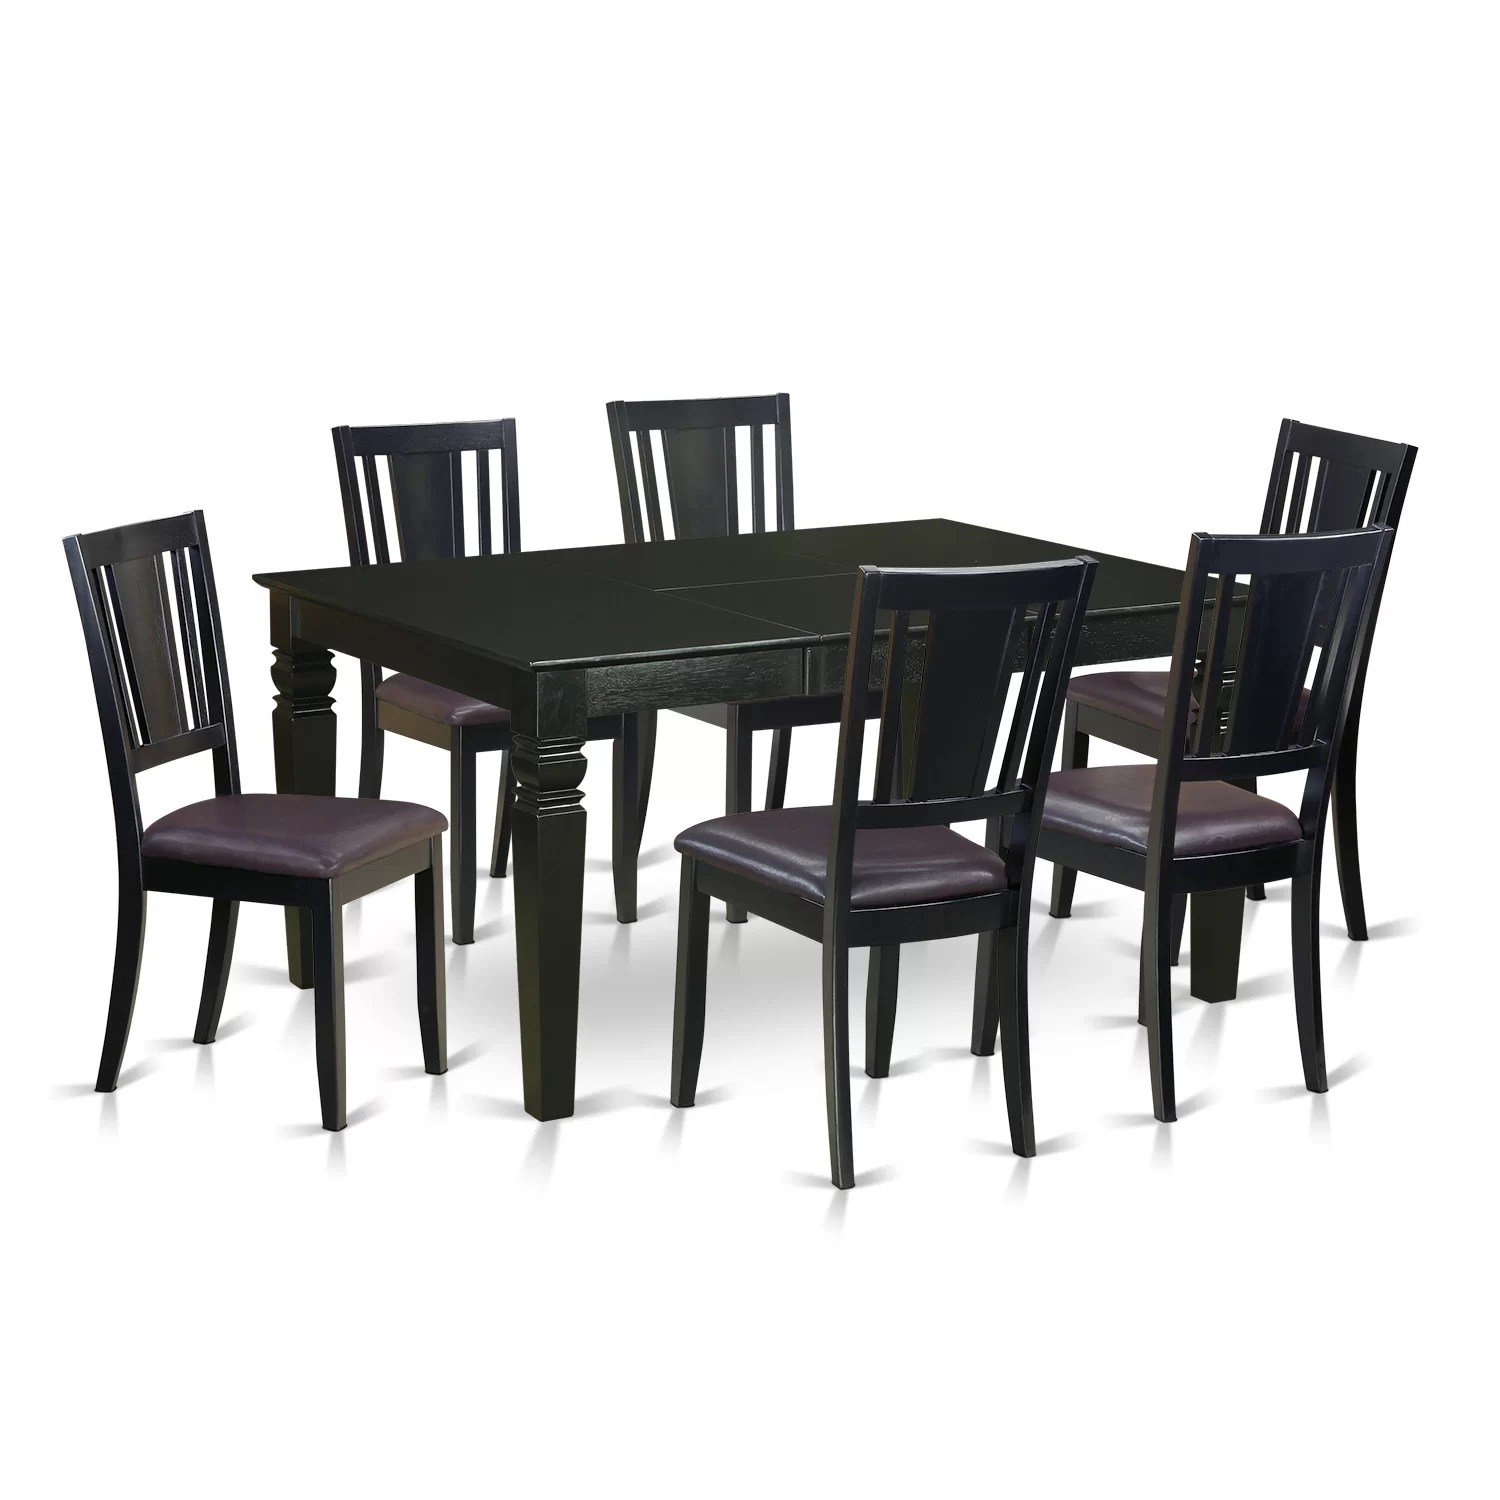 6 Dining Room Chairs Wooden Importers Weston 7 Piece Dining Set Wayfair